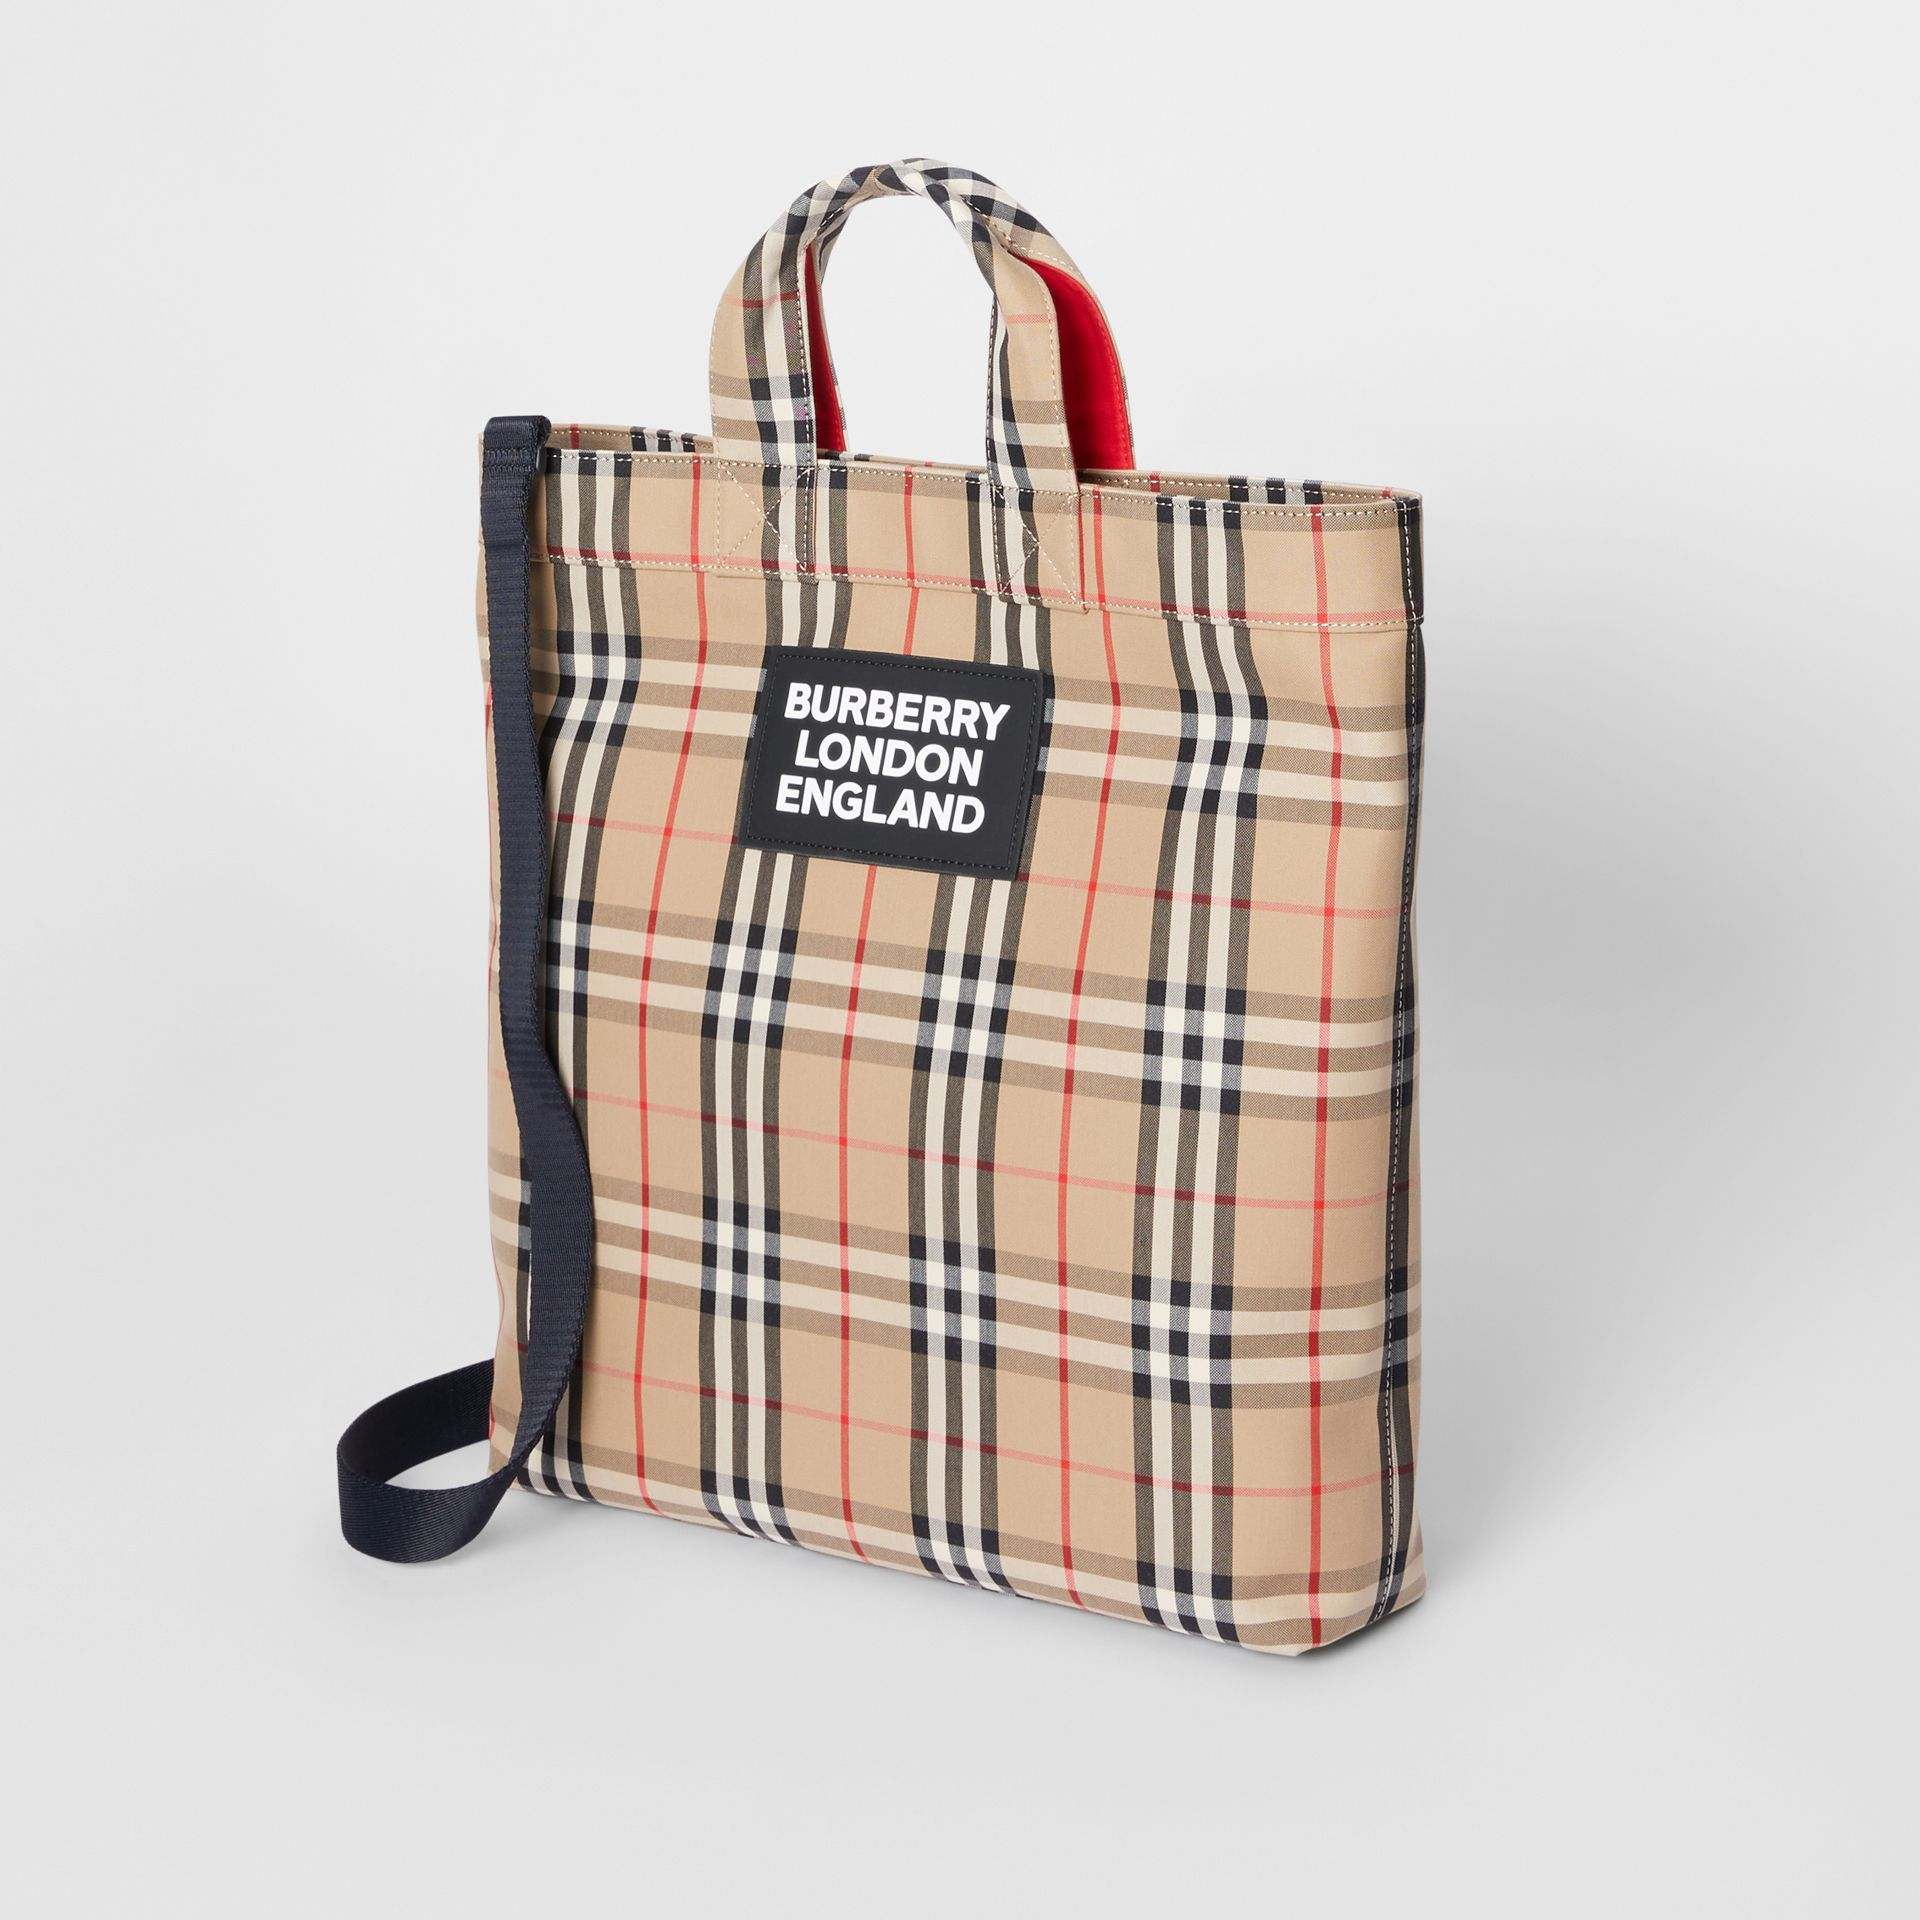 Logo Appliqué Vintage Check Cotton Blend Tote in Archive Beige - Men | Burberry - gallery image 3